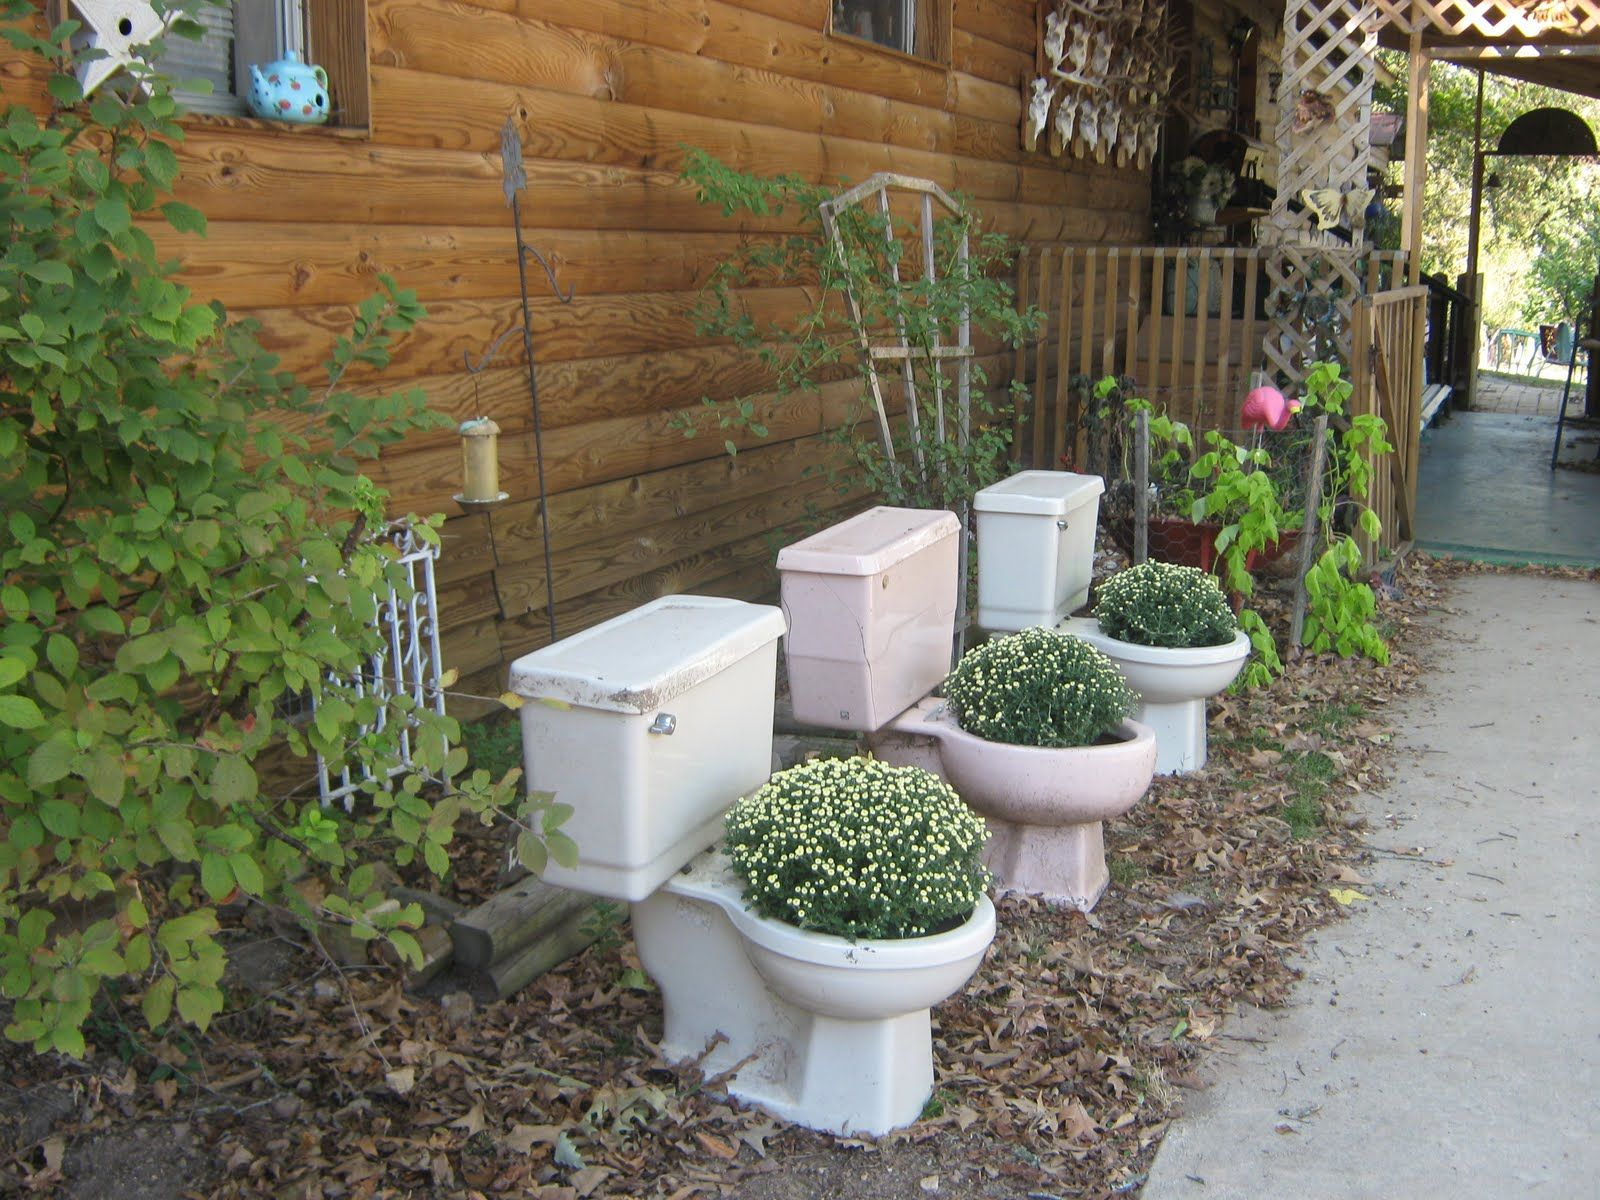 Yard ornament ideas - Redneck Lawn Ornaments I Love When I See Old Toilets Repurposed I Always Imagine